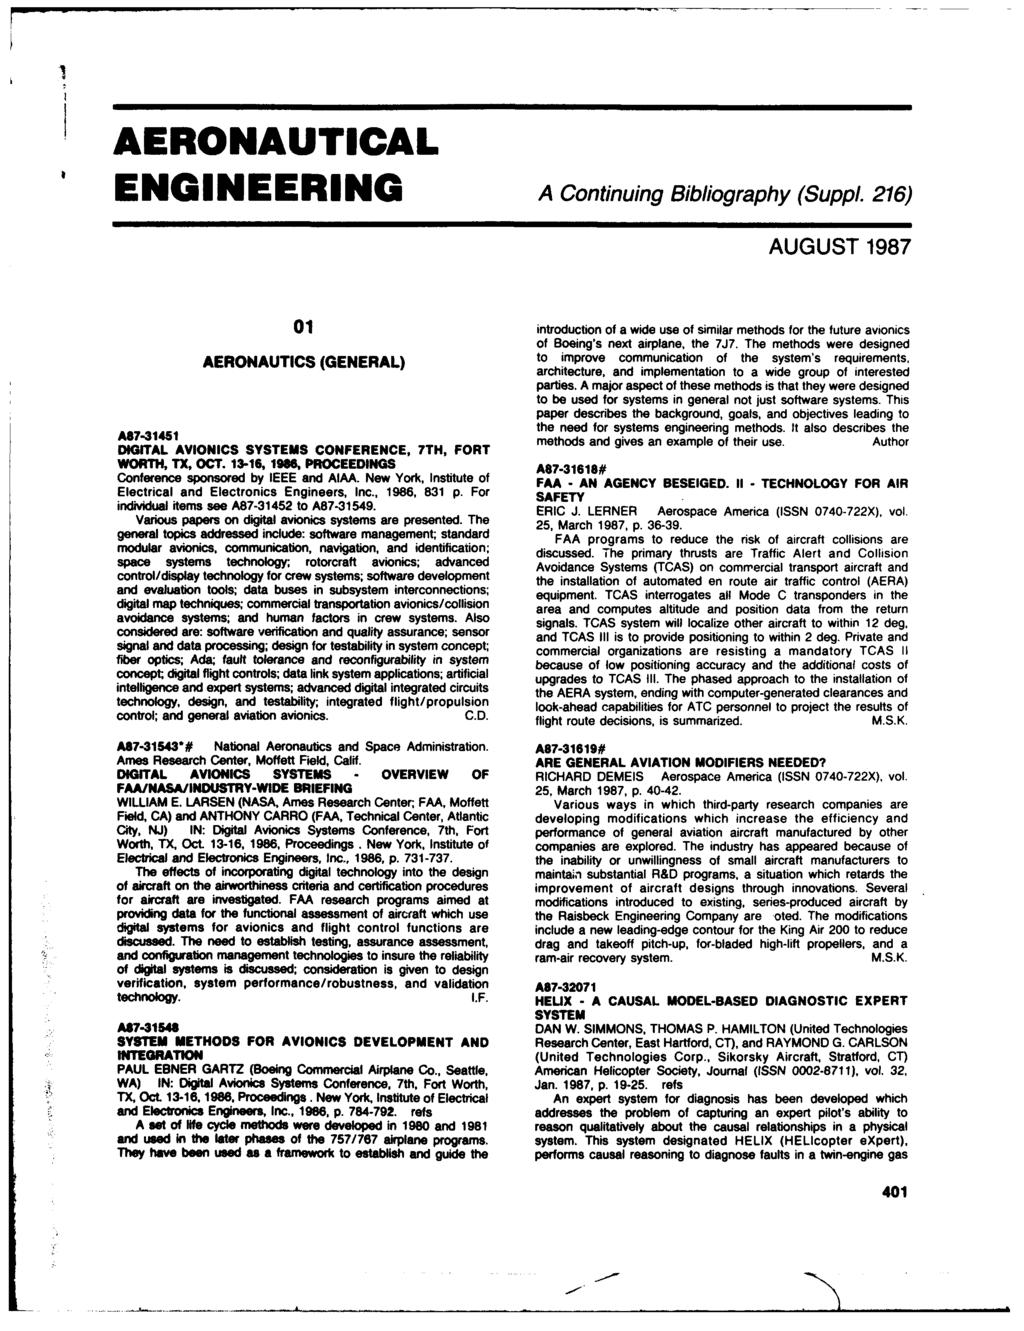 AERONAUTICAL ENGINEERING A Continuing Bibliography (Suppl. 216) AUGUST 1987 01 introduction of a wide use of similar methods for the future avionics of Boeing's next airplane, the 7J7.